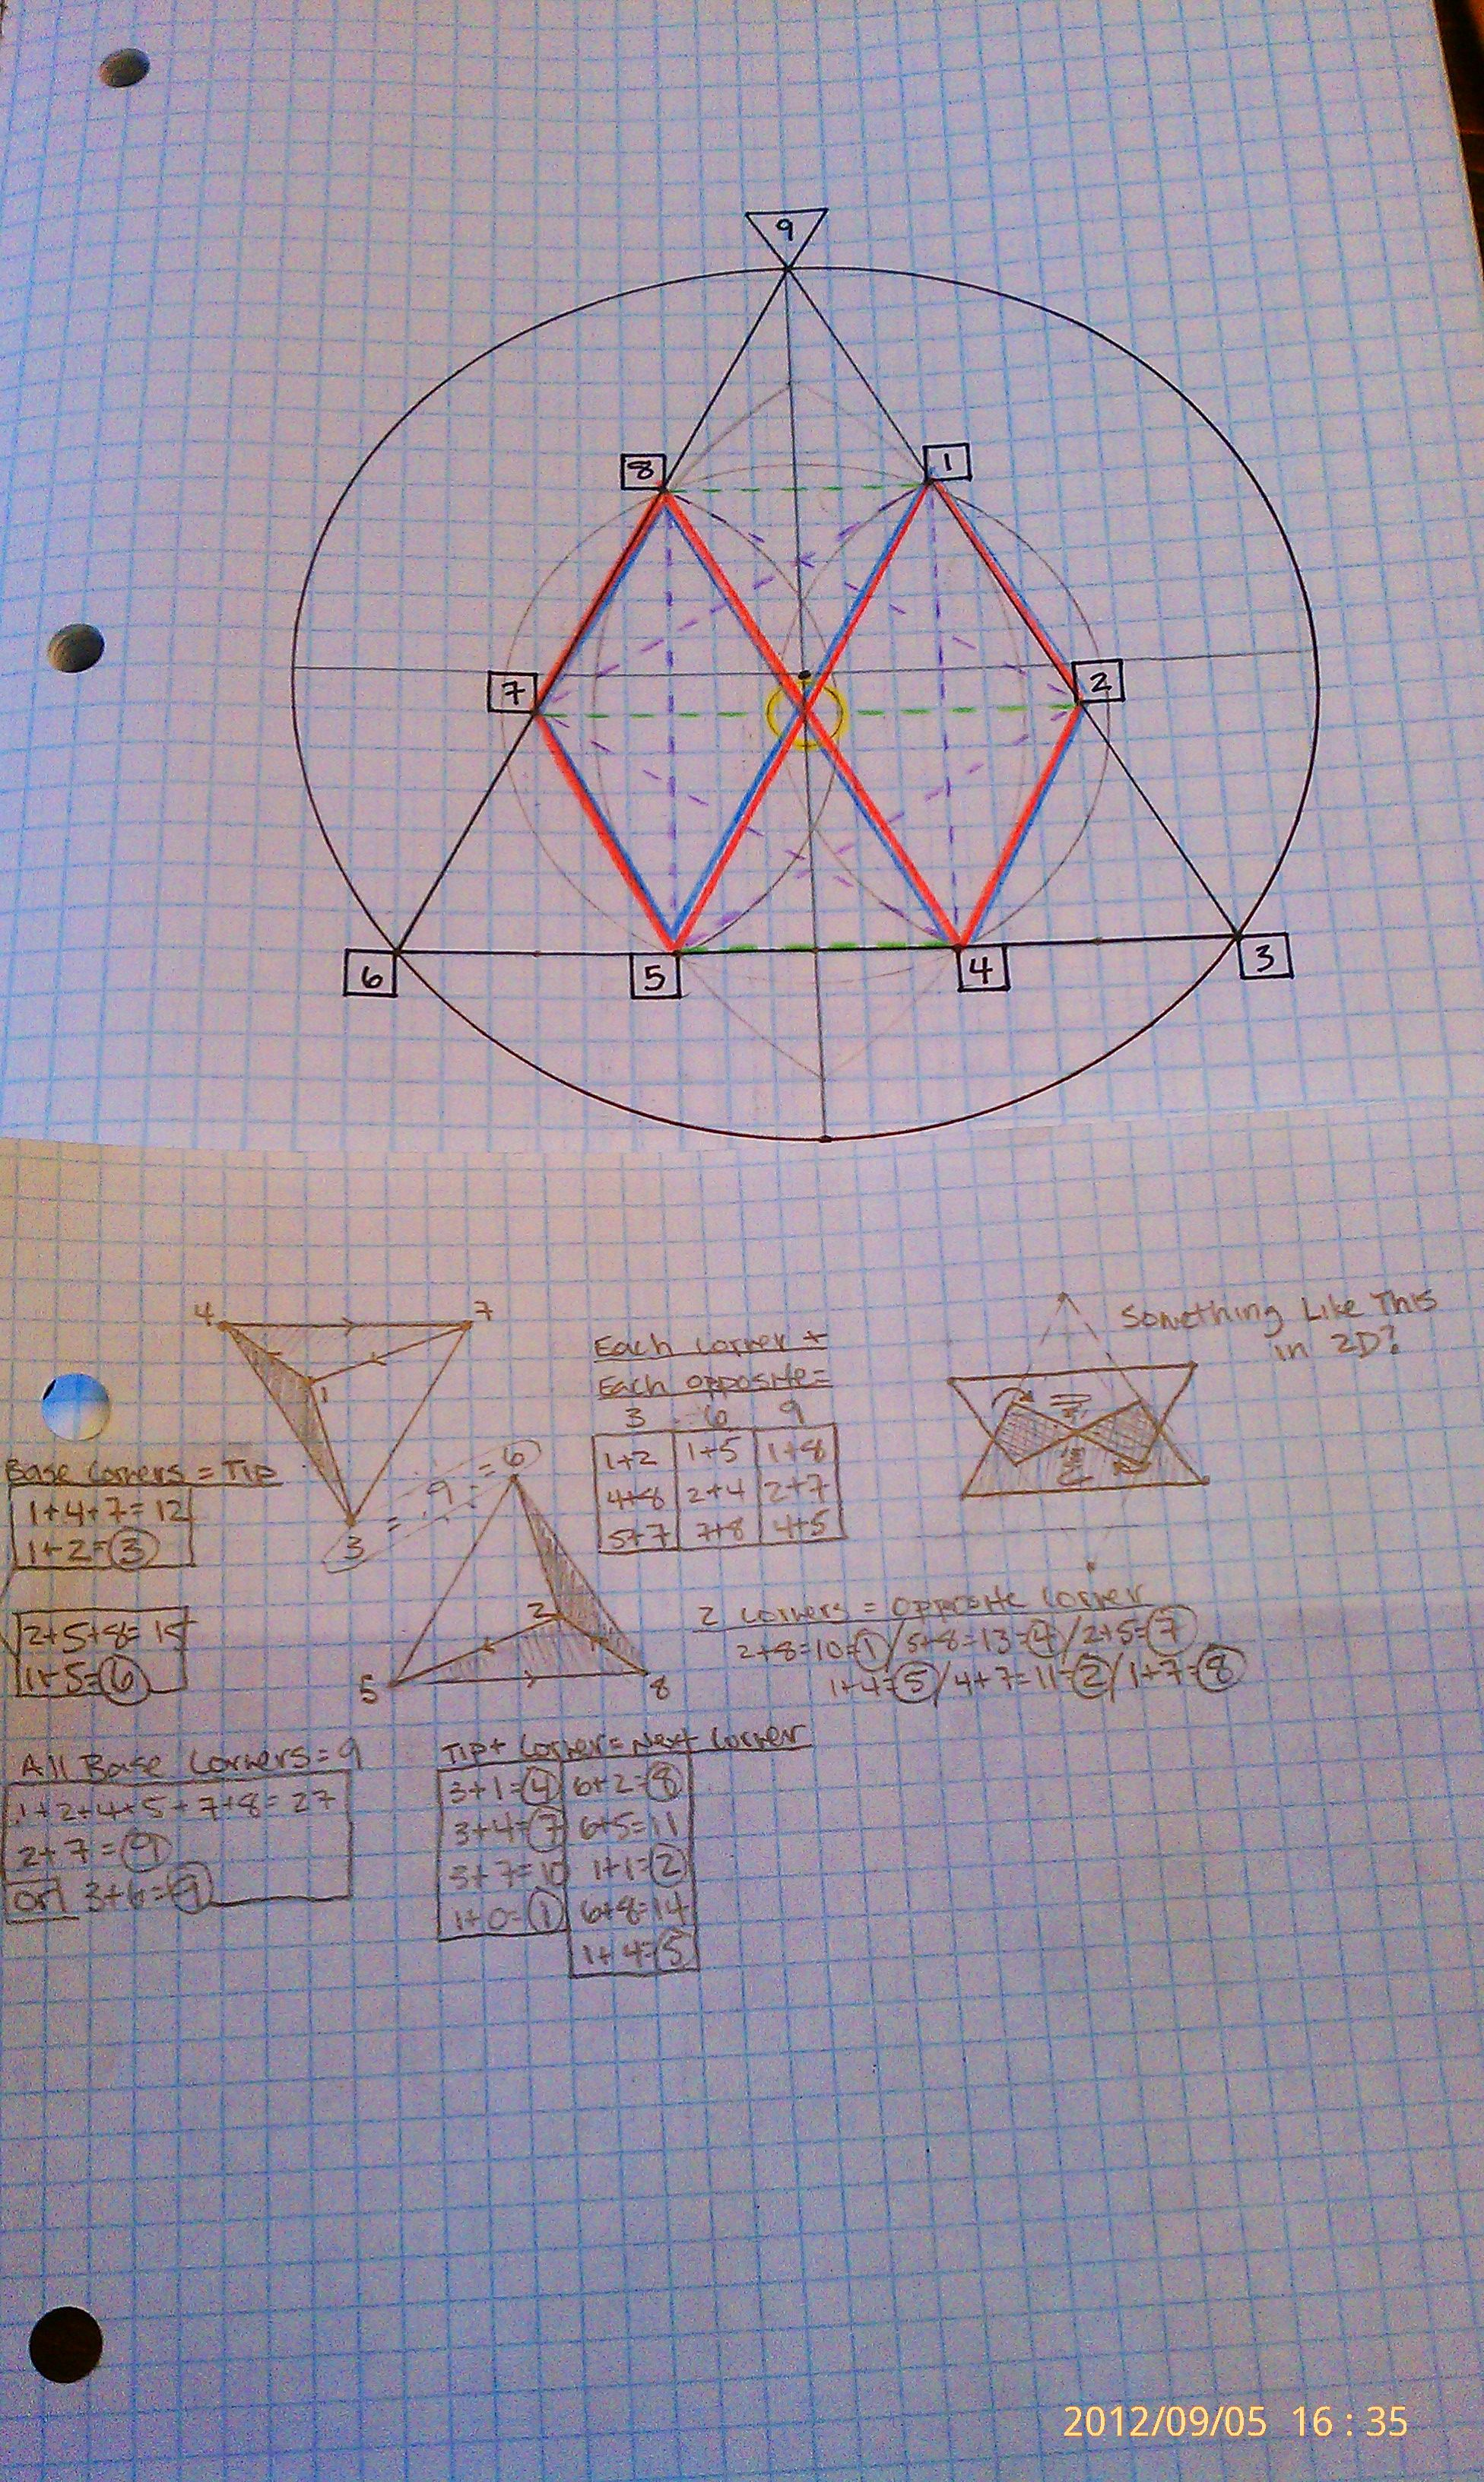 An exploration of Rodin vortex math and triangles (3's)